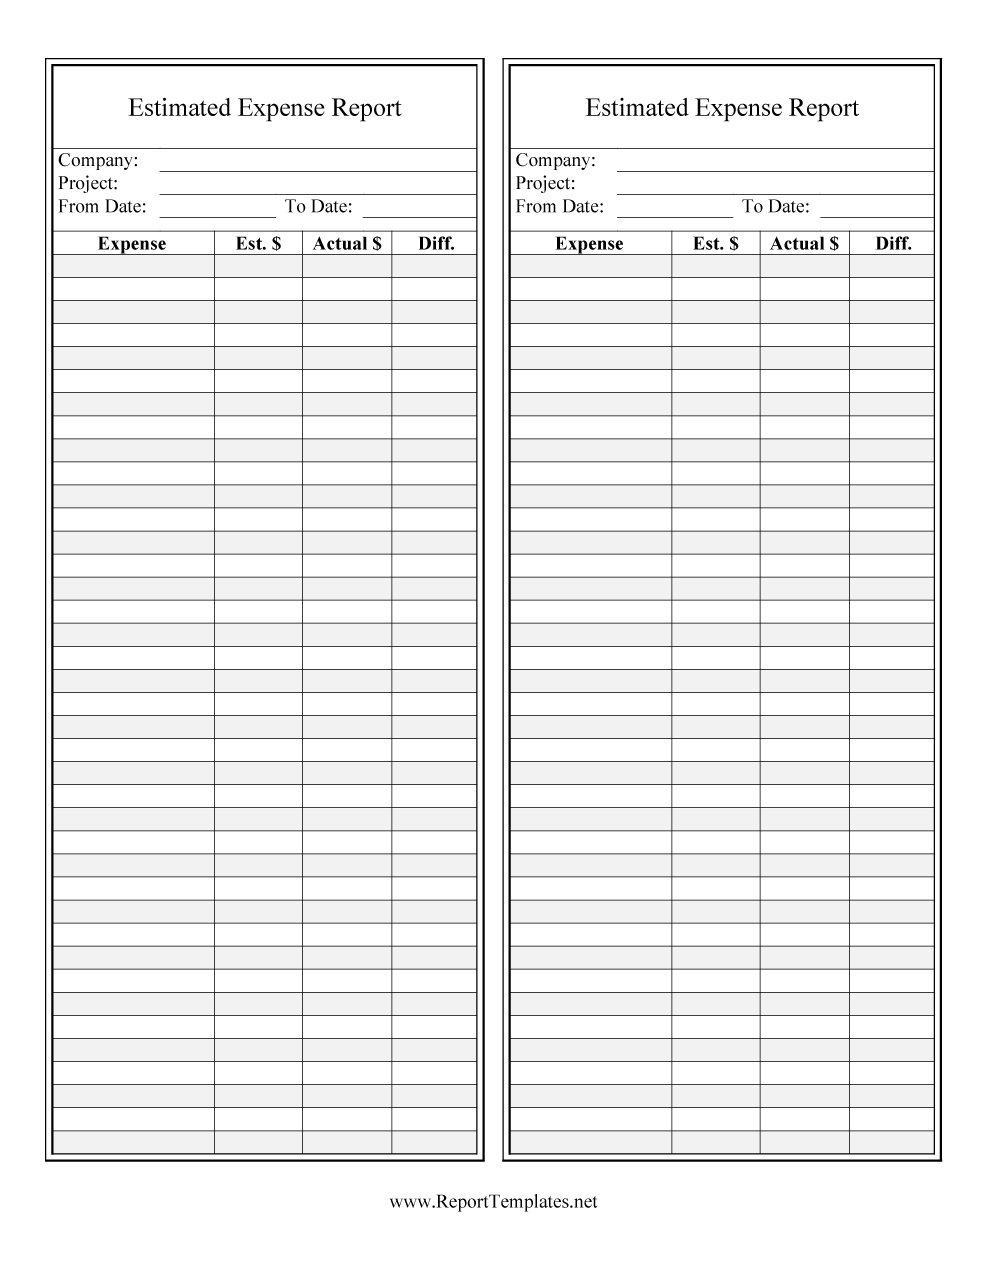 40  Expense Report Templates To Help You Save Money   Template Lab Inside Expense Report Spreadsheet Expense Report Spreadsheet Spreadsheet Softwar Spreadsheet Softwar expense report templates free